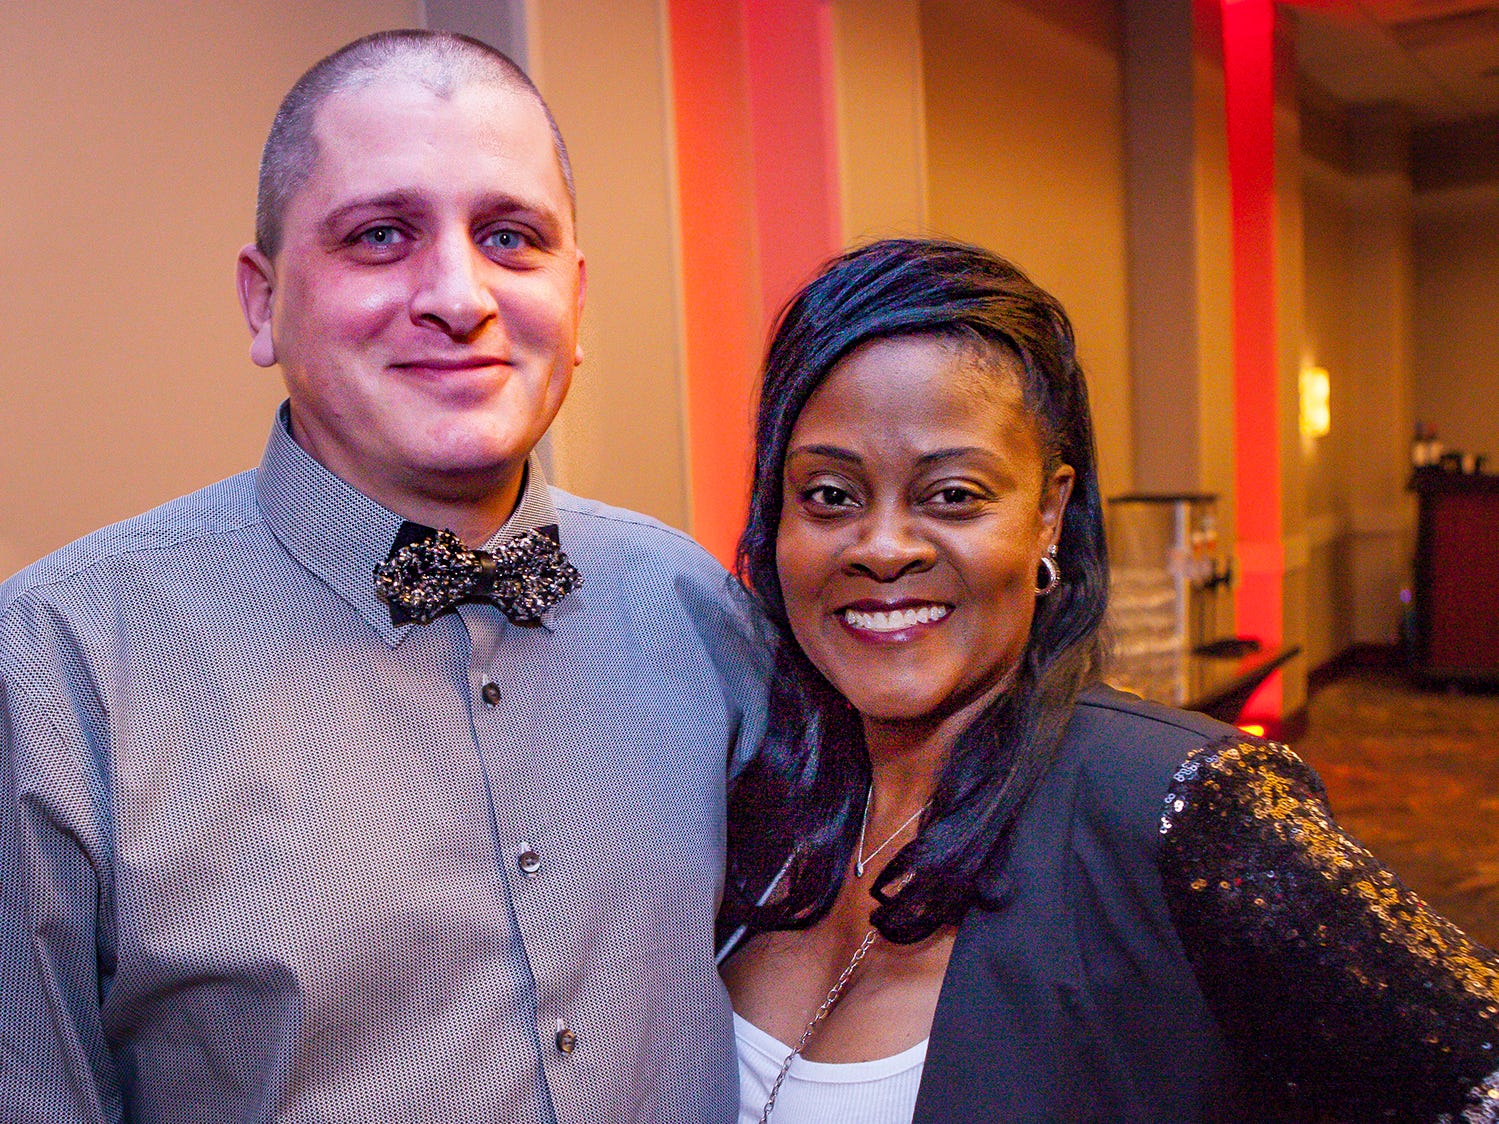 Daniel and Alexia Youngblood at the Pyramid Foundation's Shimmer and Shine New Year's Eve party, held at DoubleTree Hotel in Murfreesboro.